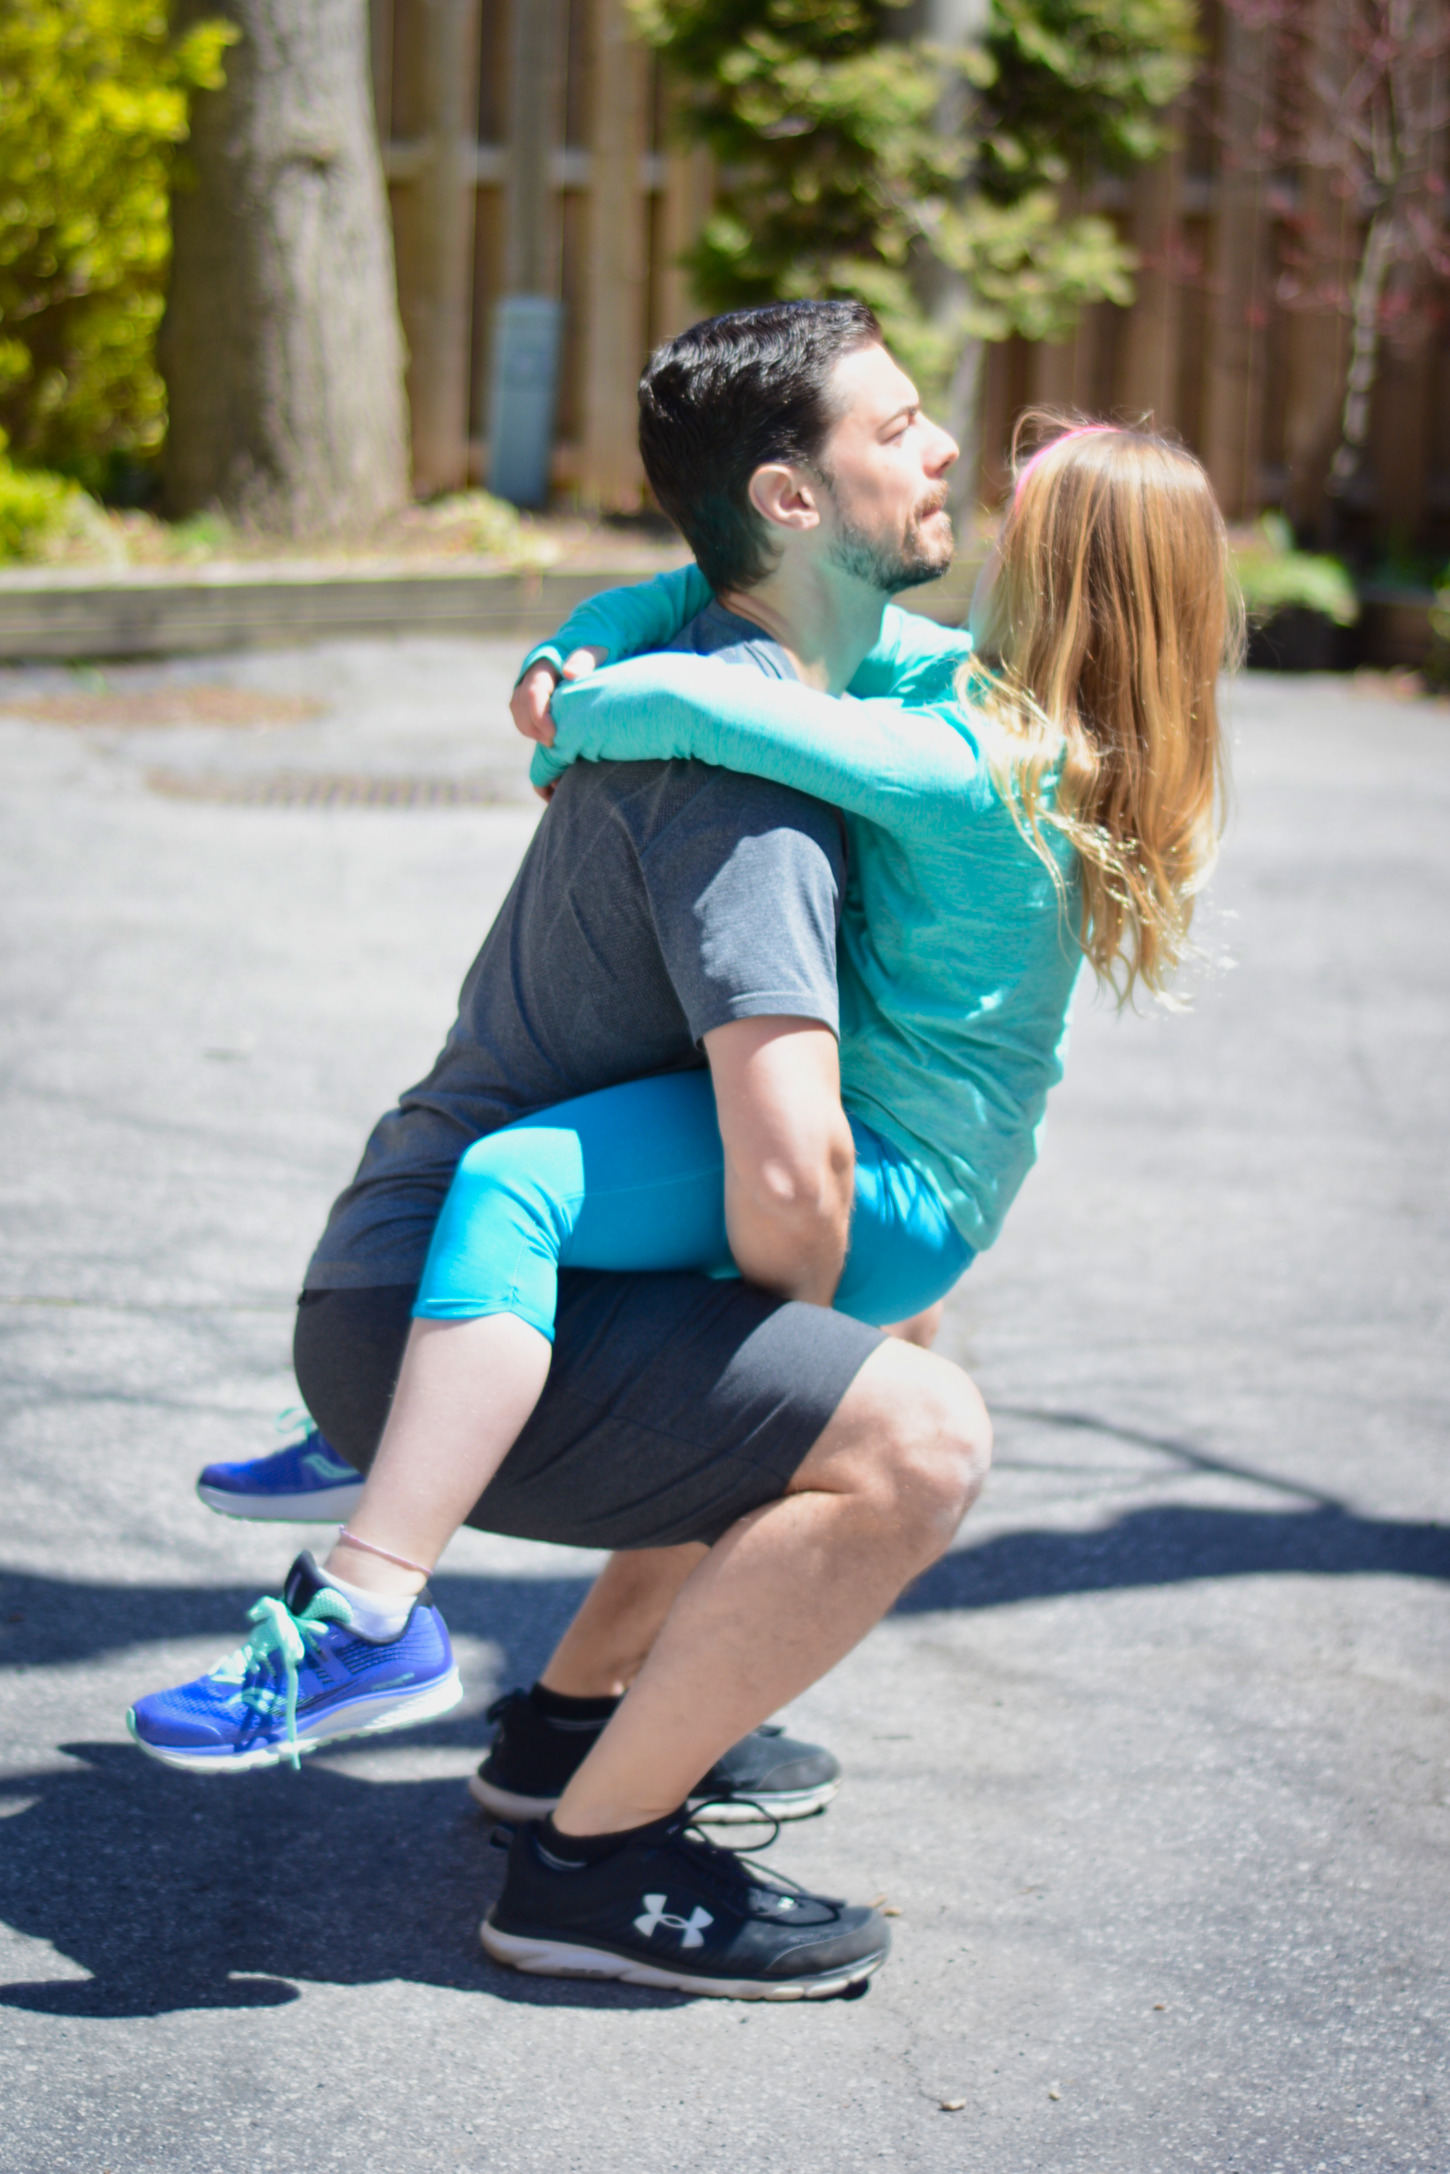 Squat - Frontcarry